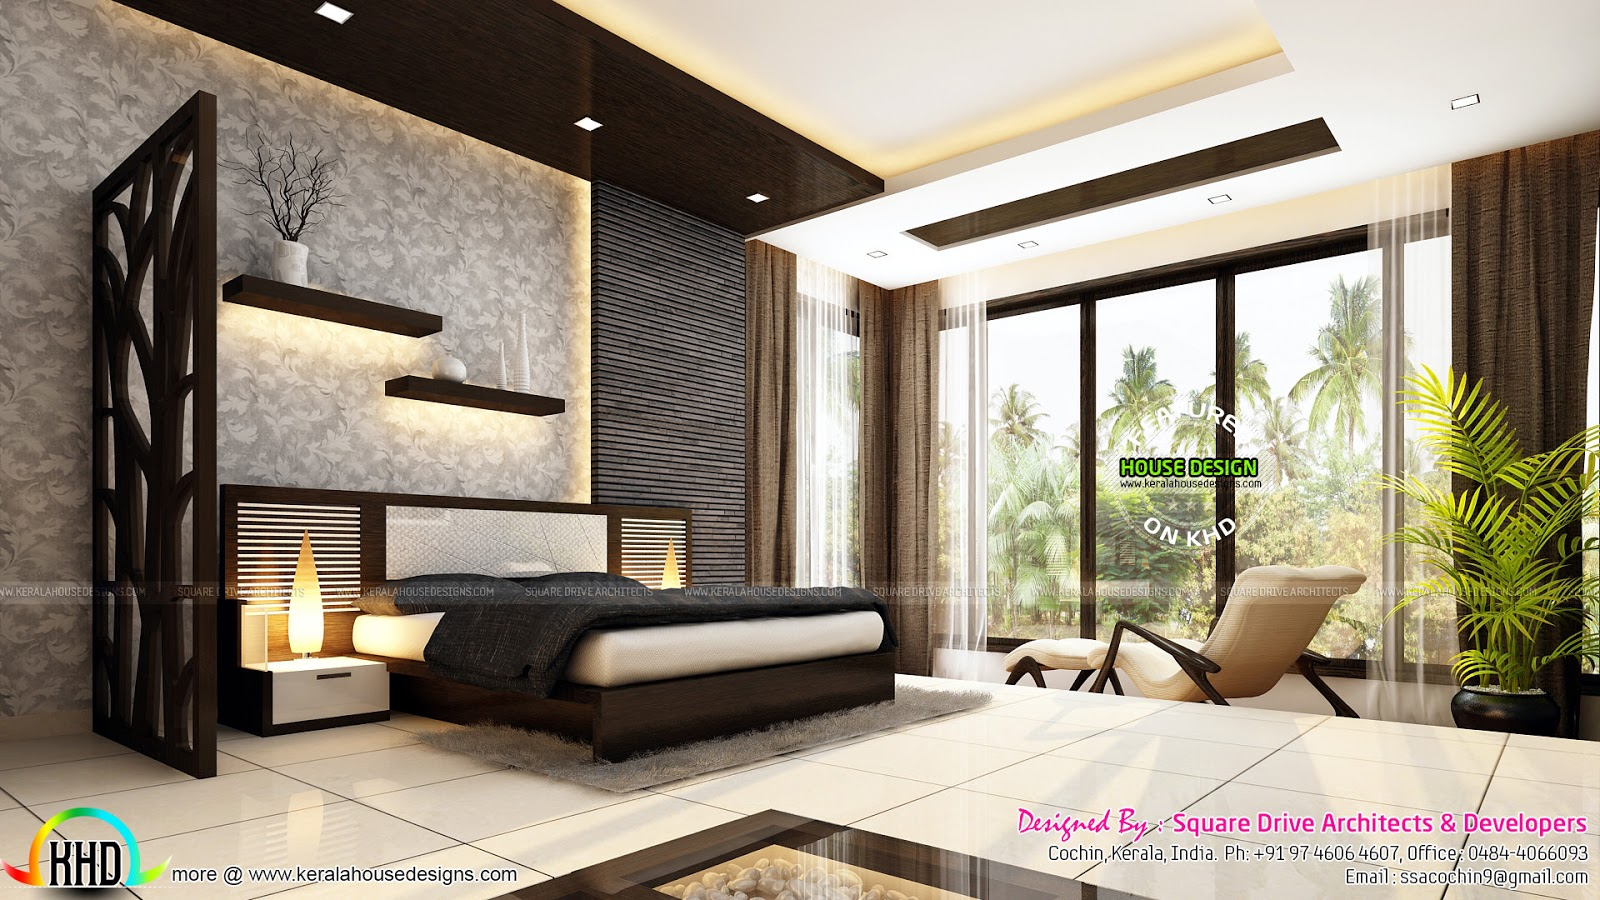 Very beautiful modern interior designs kerala home for House decoration bedroom